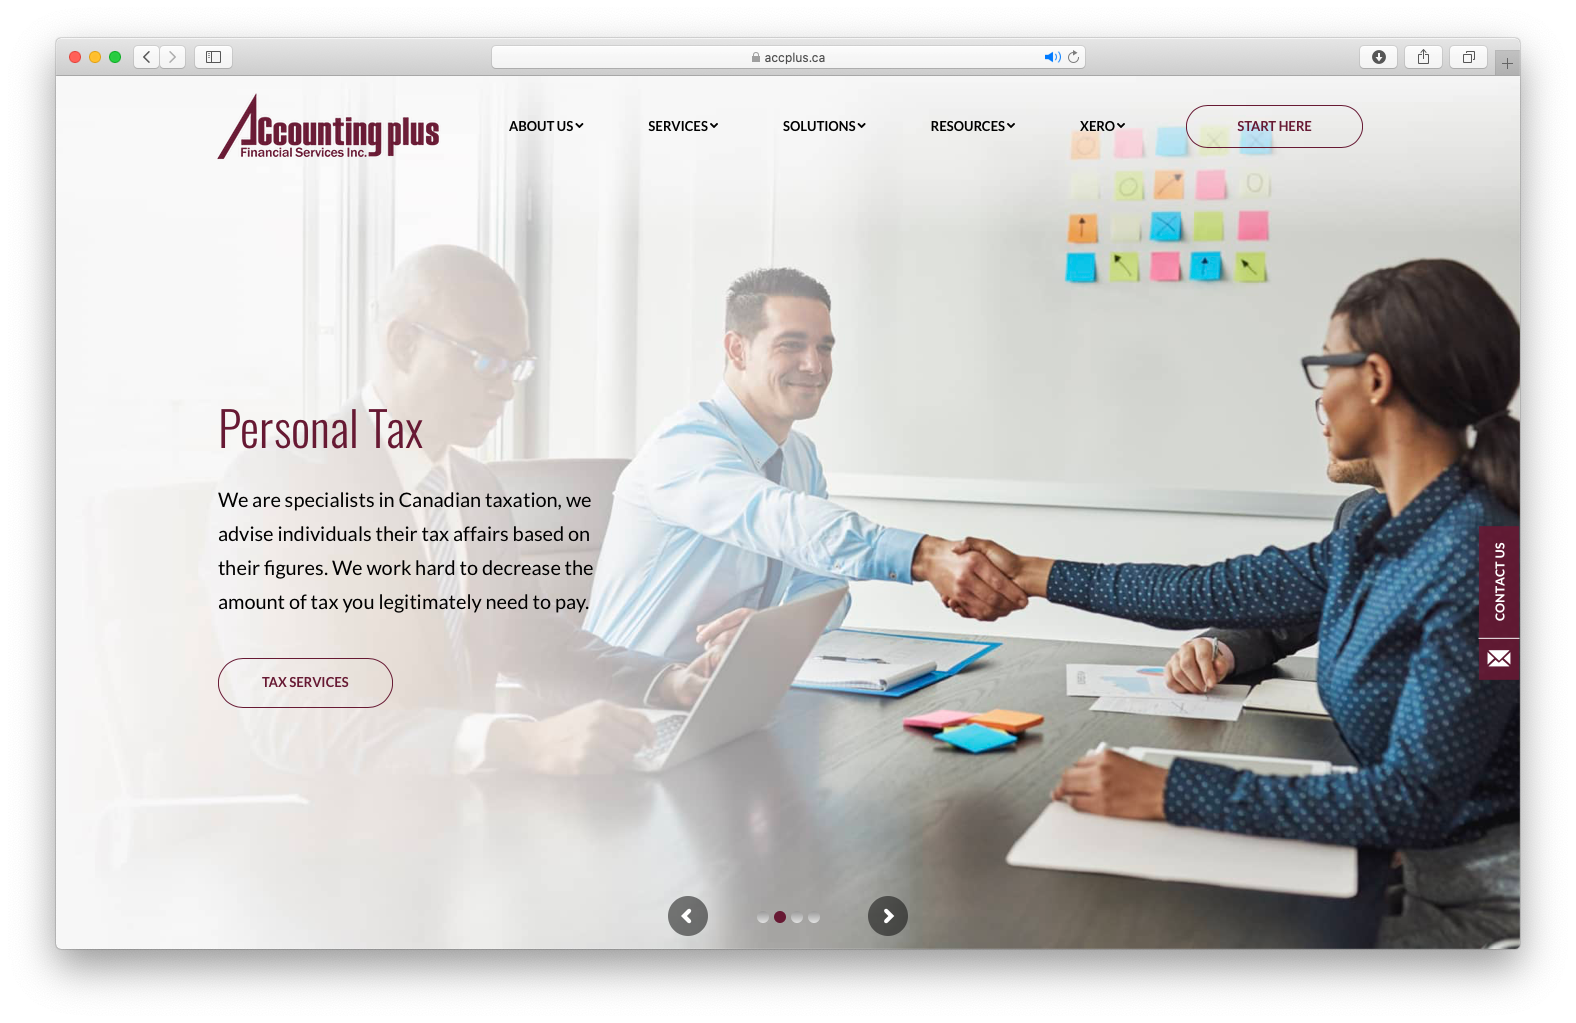 Accounting Plus Financial Services